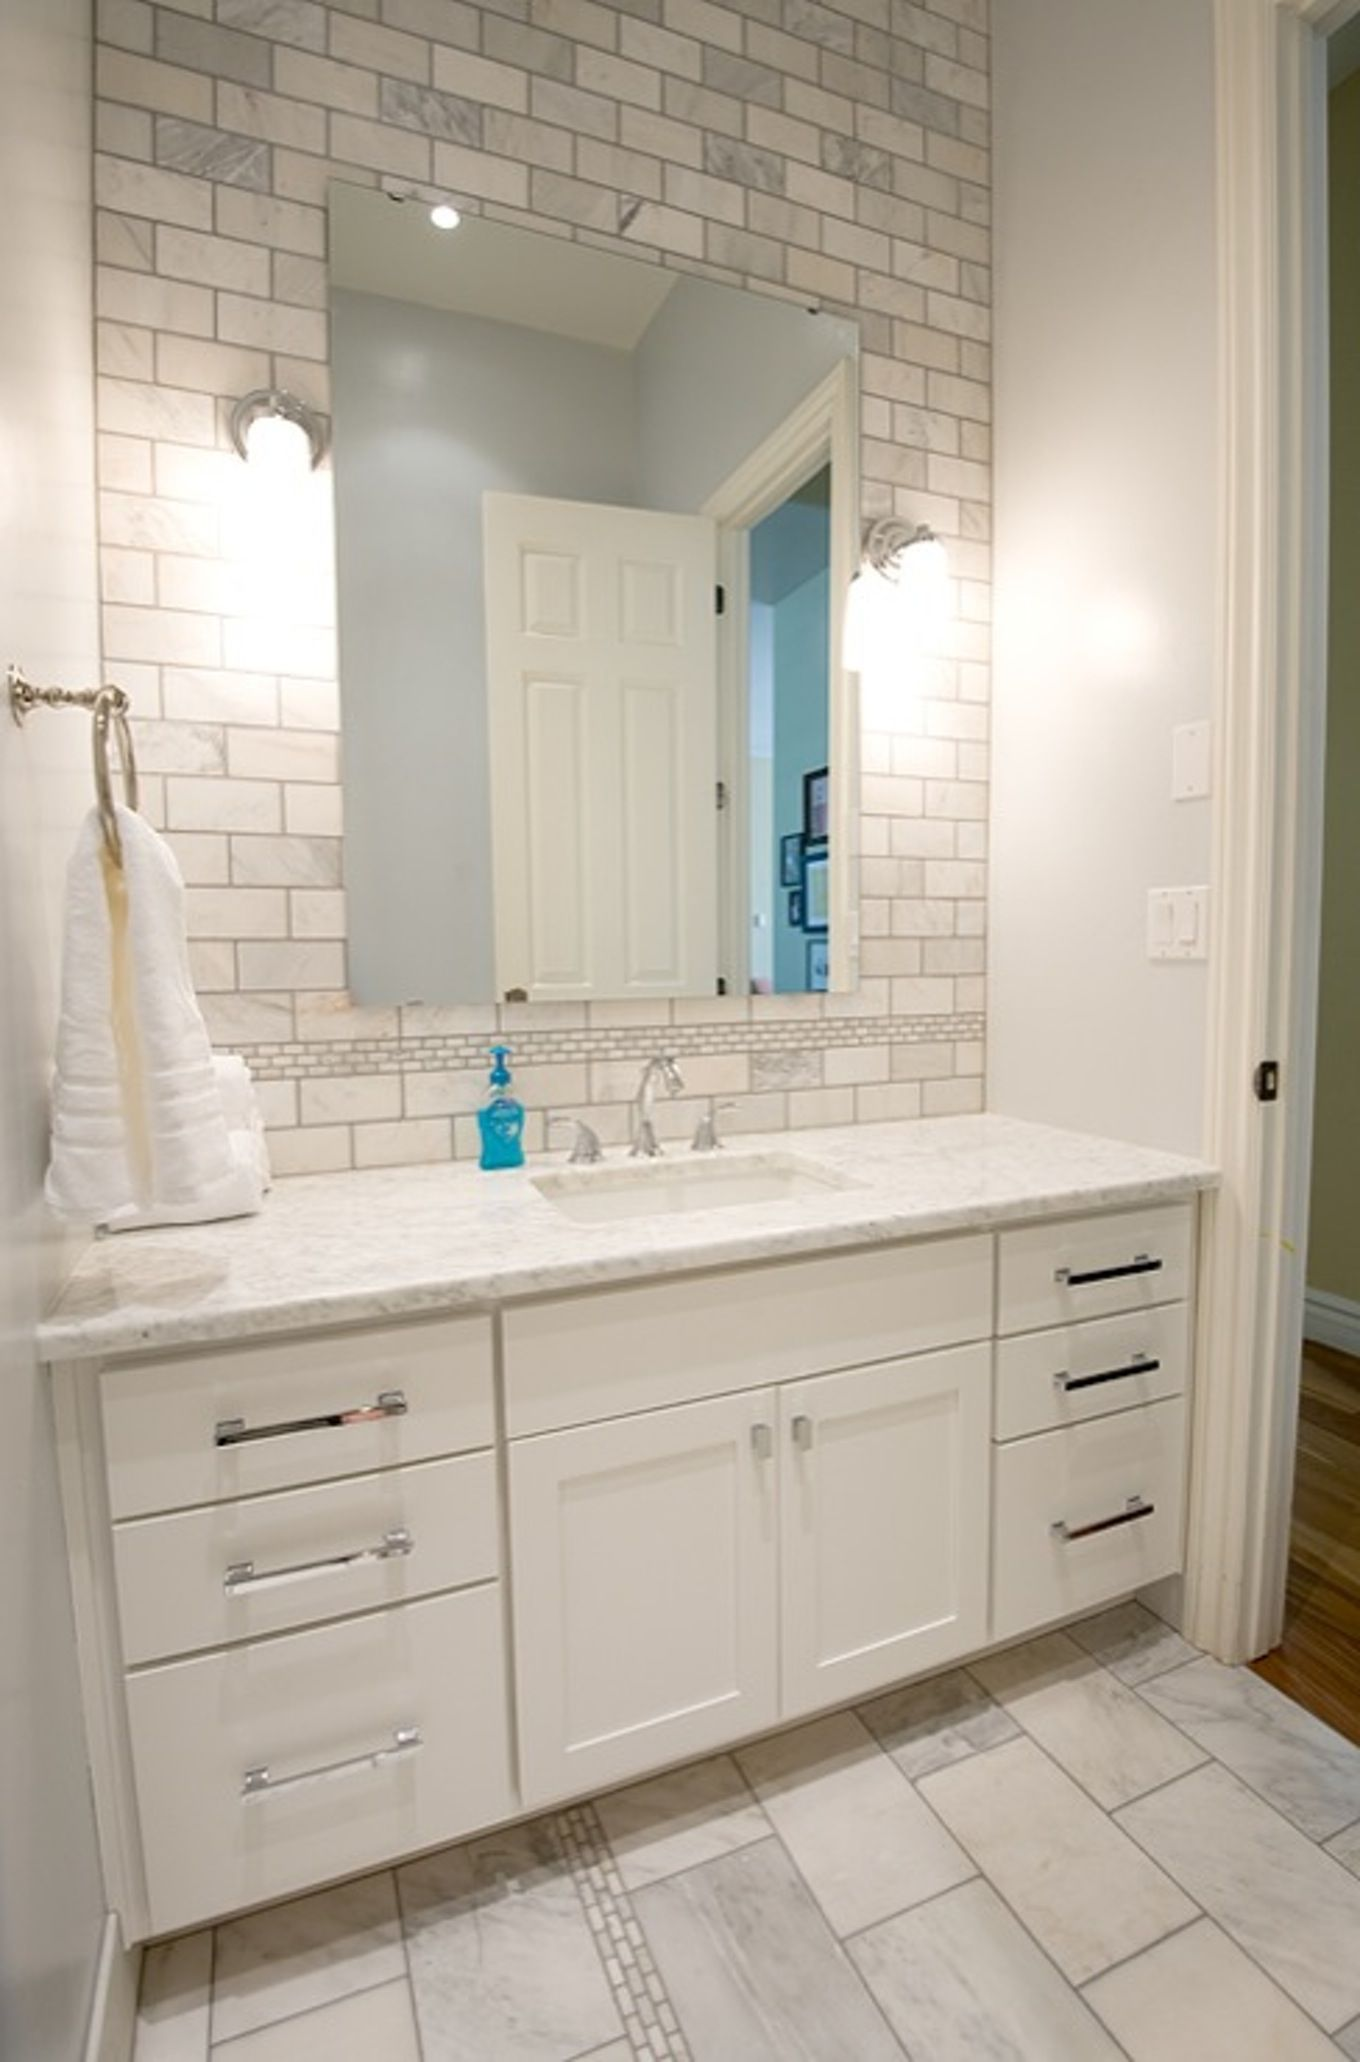 mirror and bahtroom near designs double bathroom floortile on modern under pattern window miami pastel simple cranes black brick delicate nice light vanities bit arched antique white edge with cabinets wall sink closed